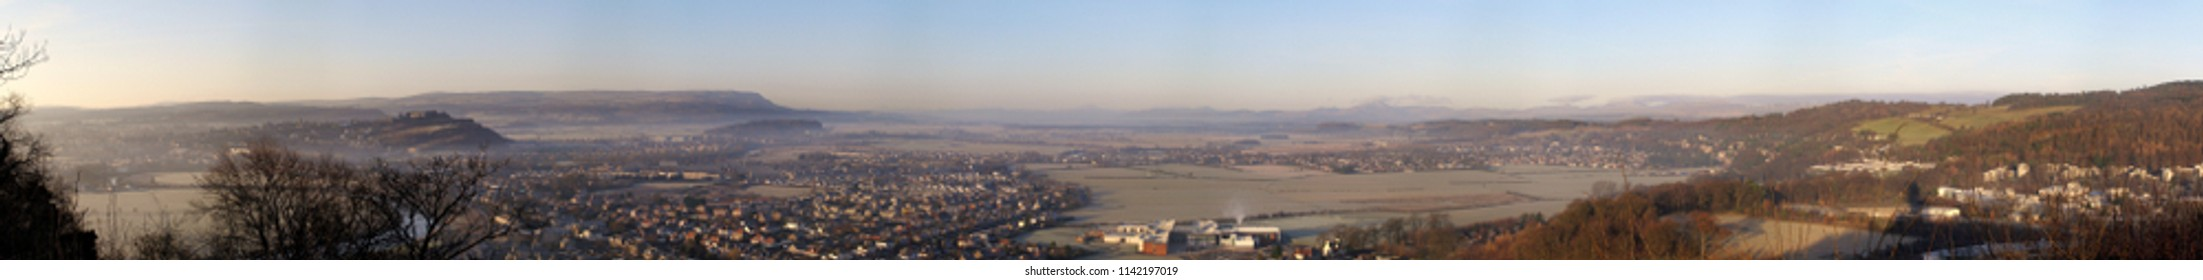 Ultra wide panorama of Stirling city in Scotland